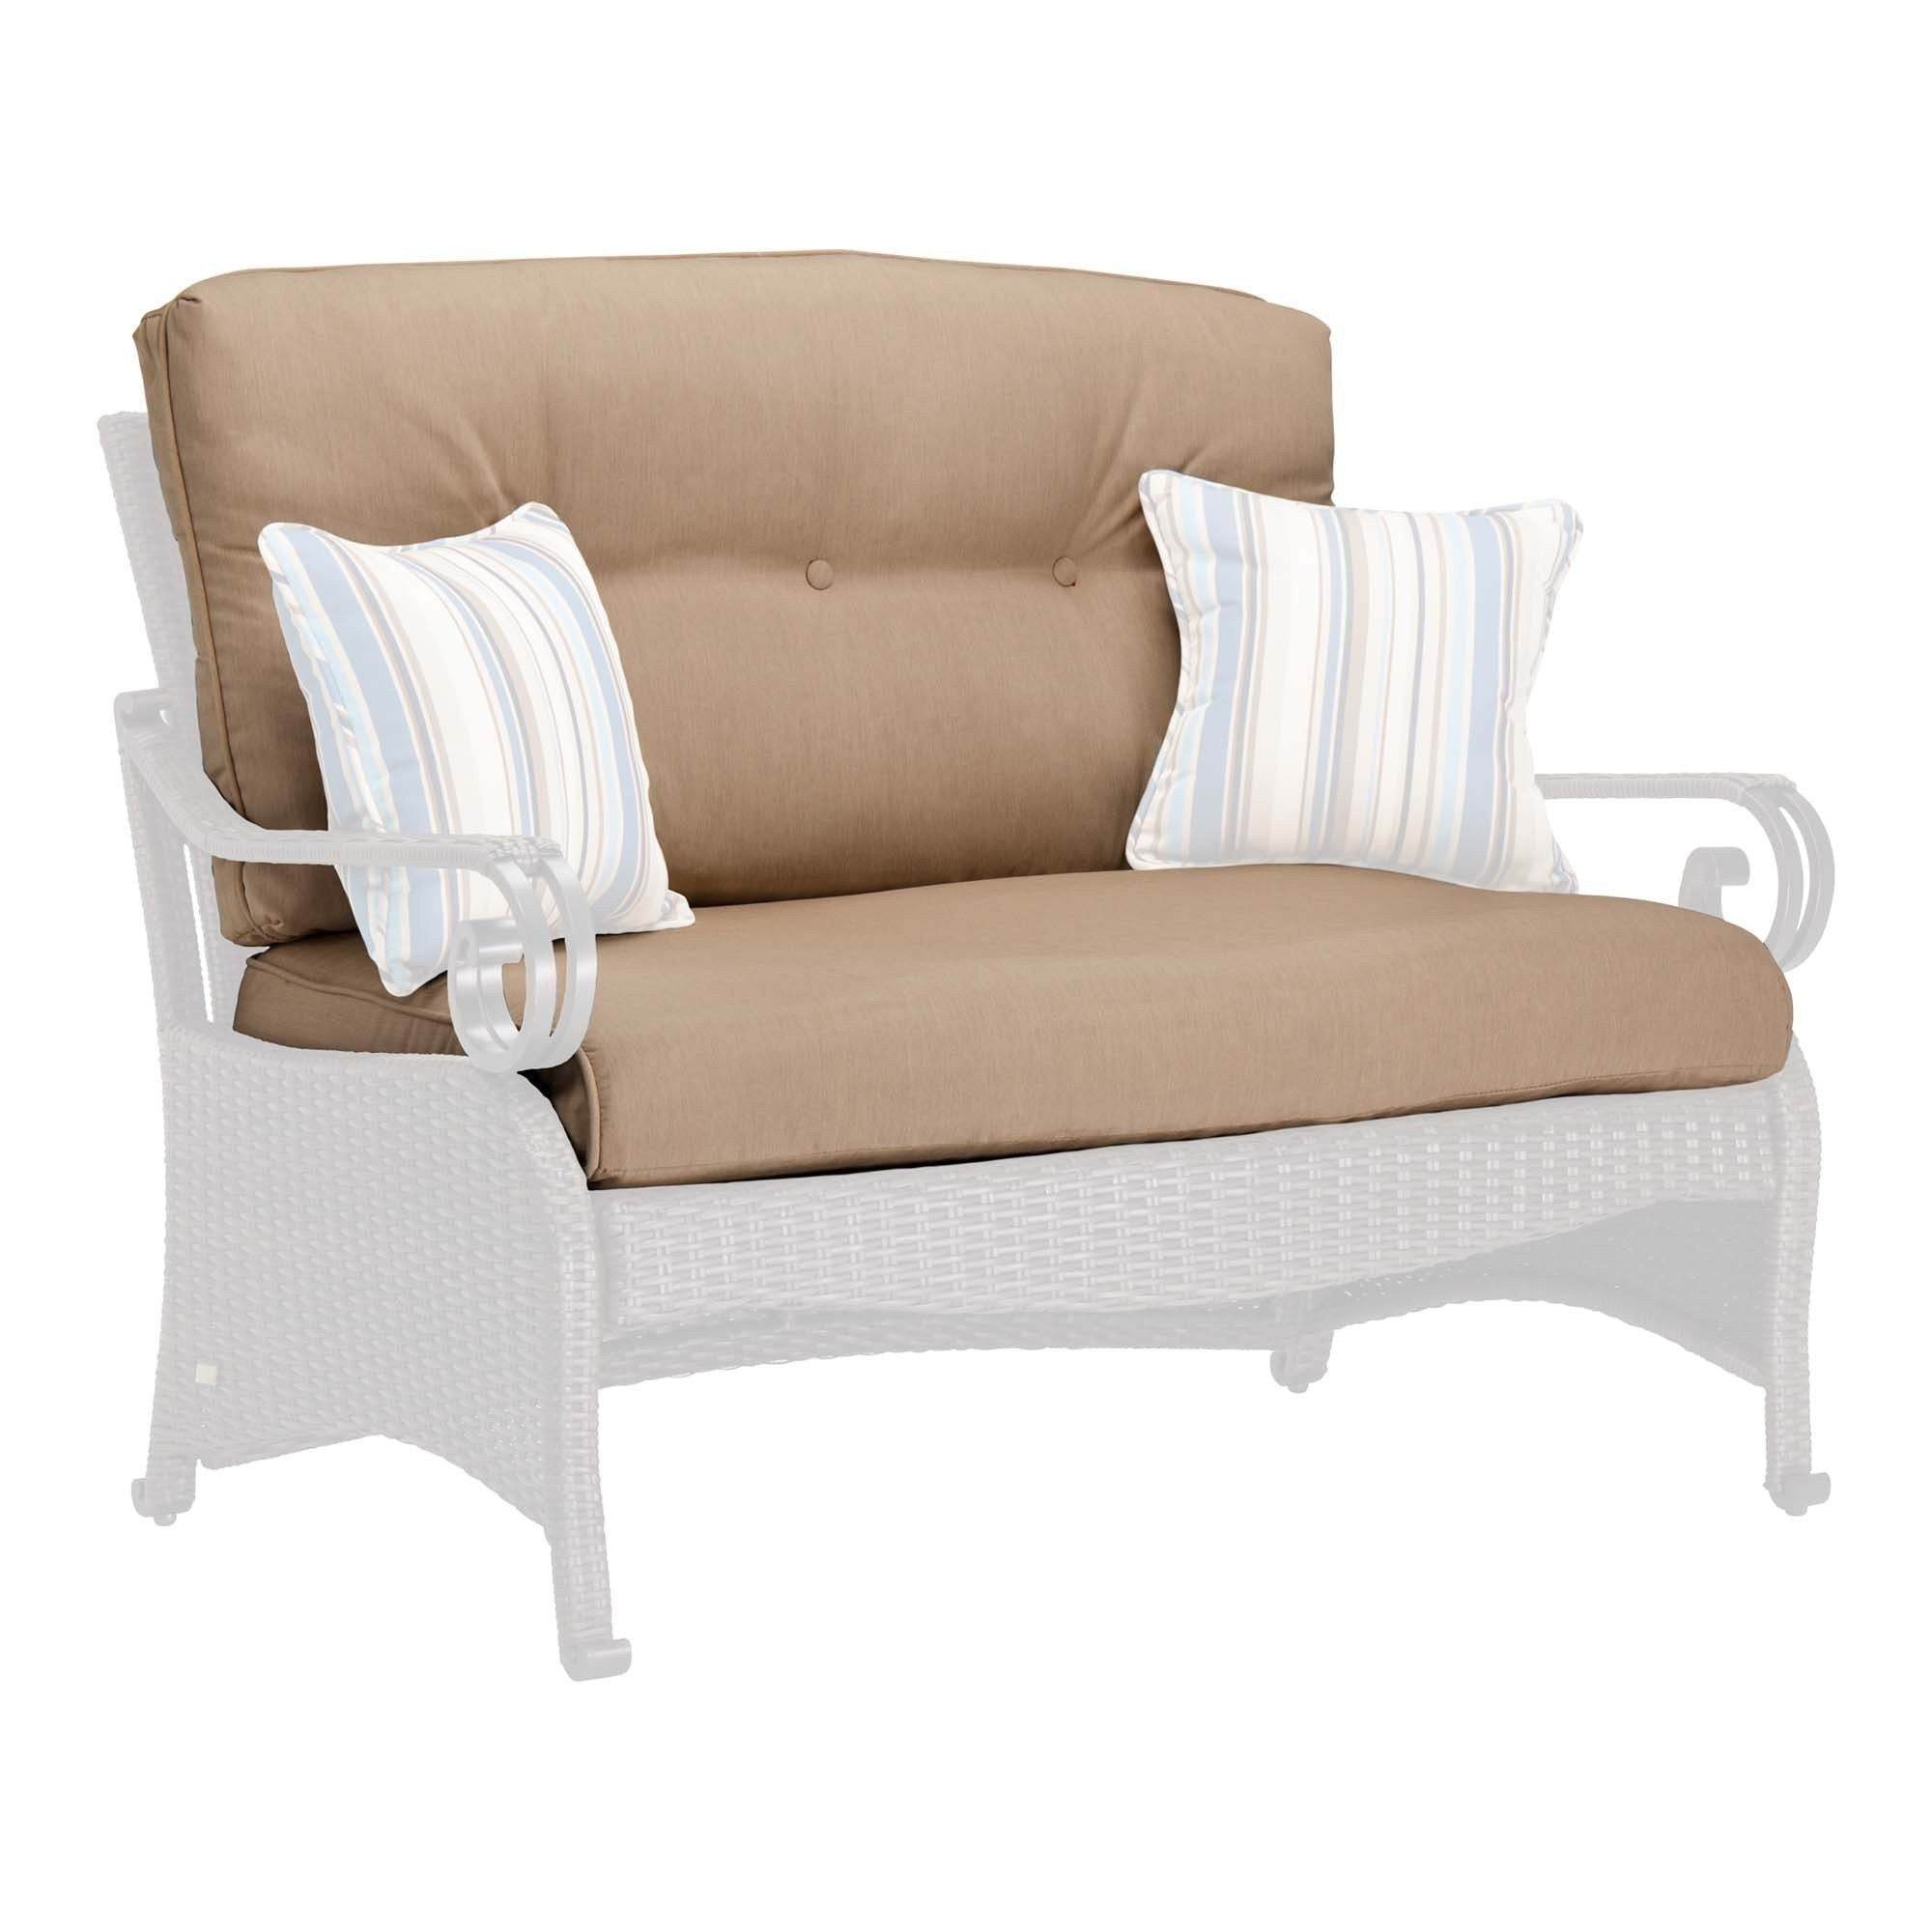 Patio Loveseat Wicker Espresso Finish Patio Loveseat With Cushion And Pillows Garden Furniture